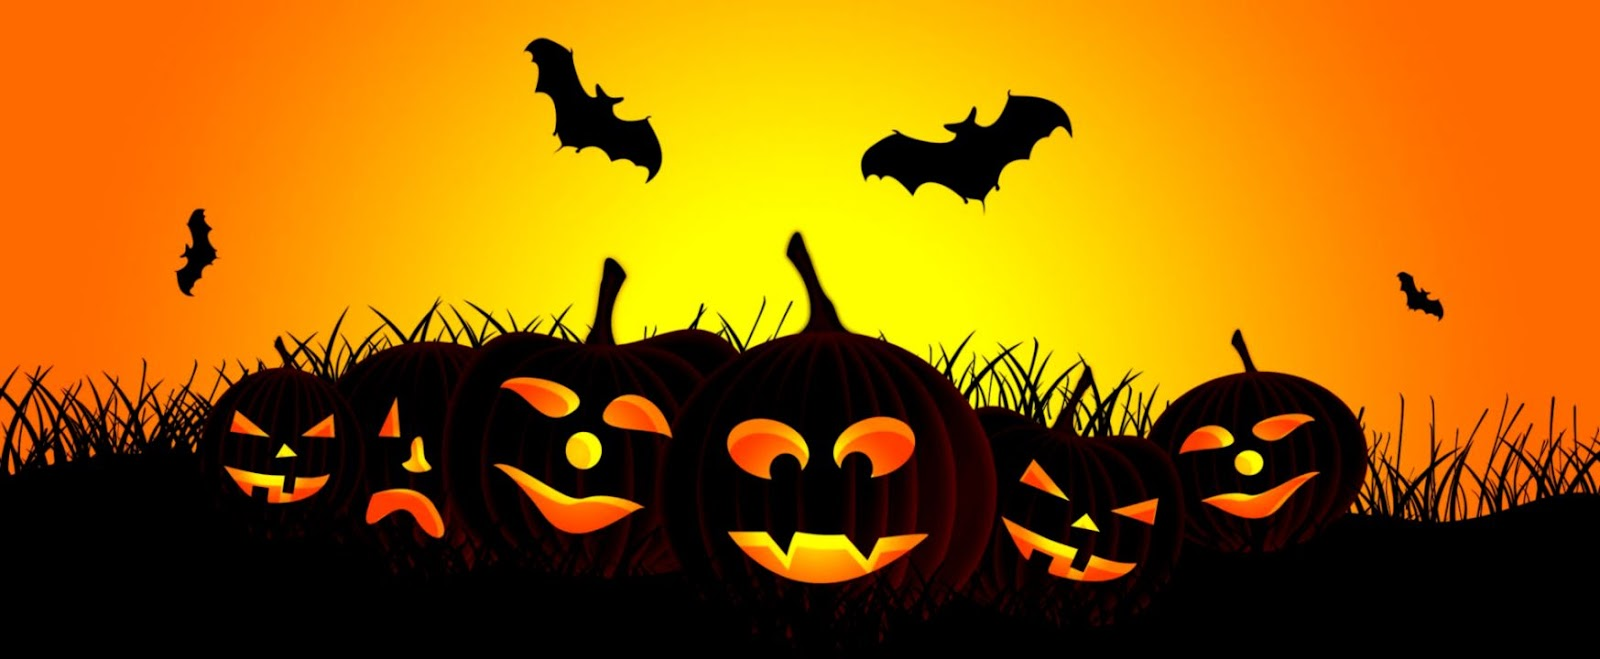 Happy Halloween Wallpaper Hd Wallpapers Latest